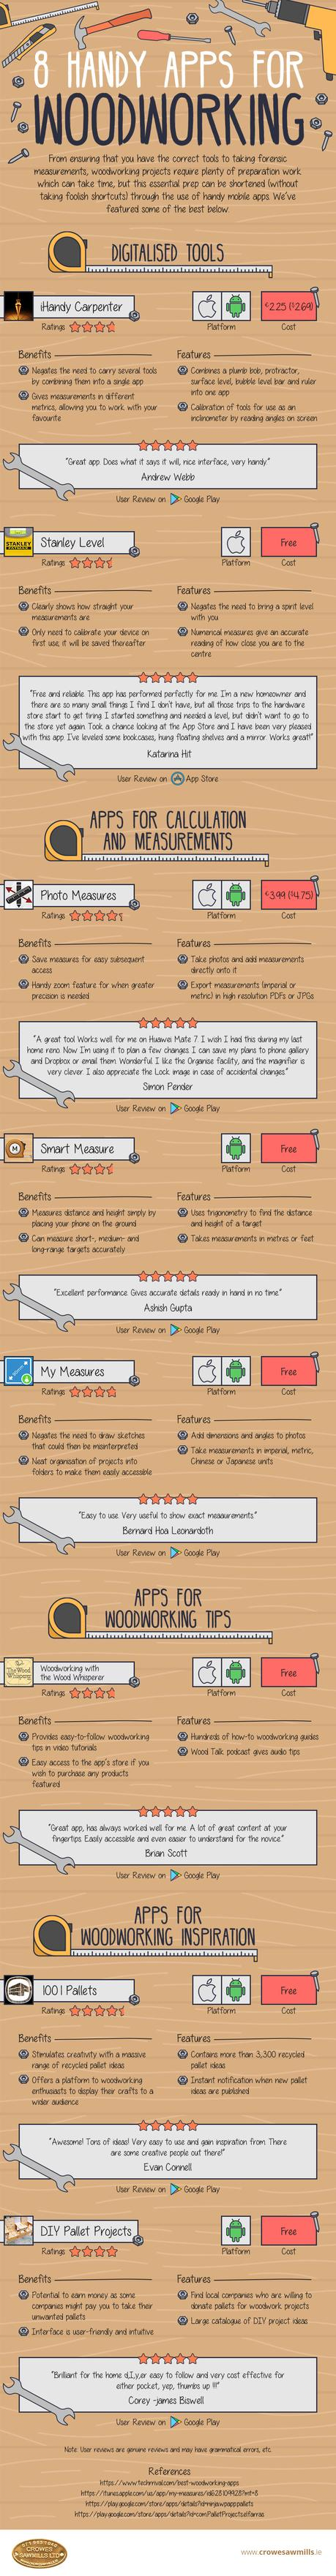 8 Handy Apps for Woodworking (Infographic)